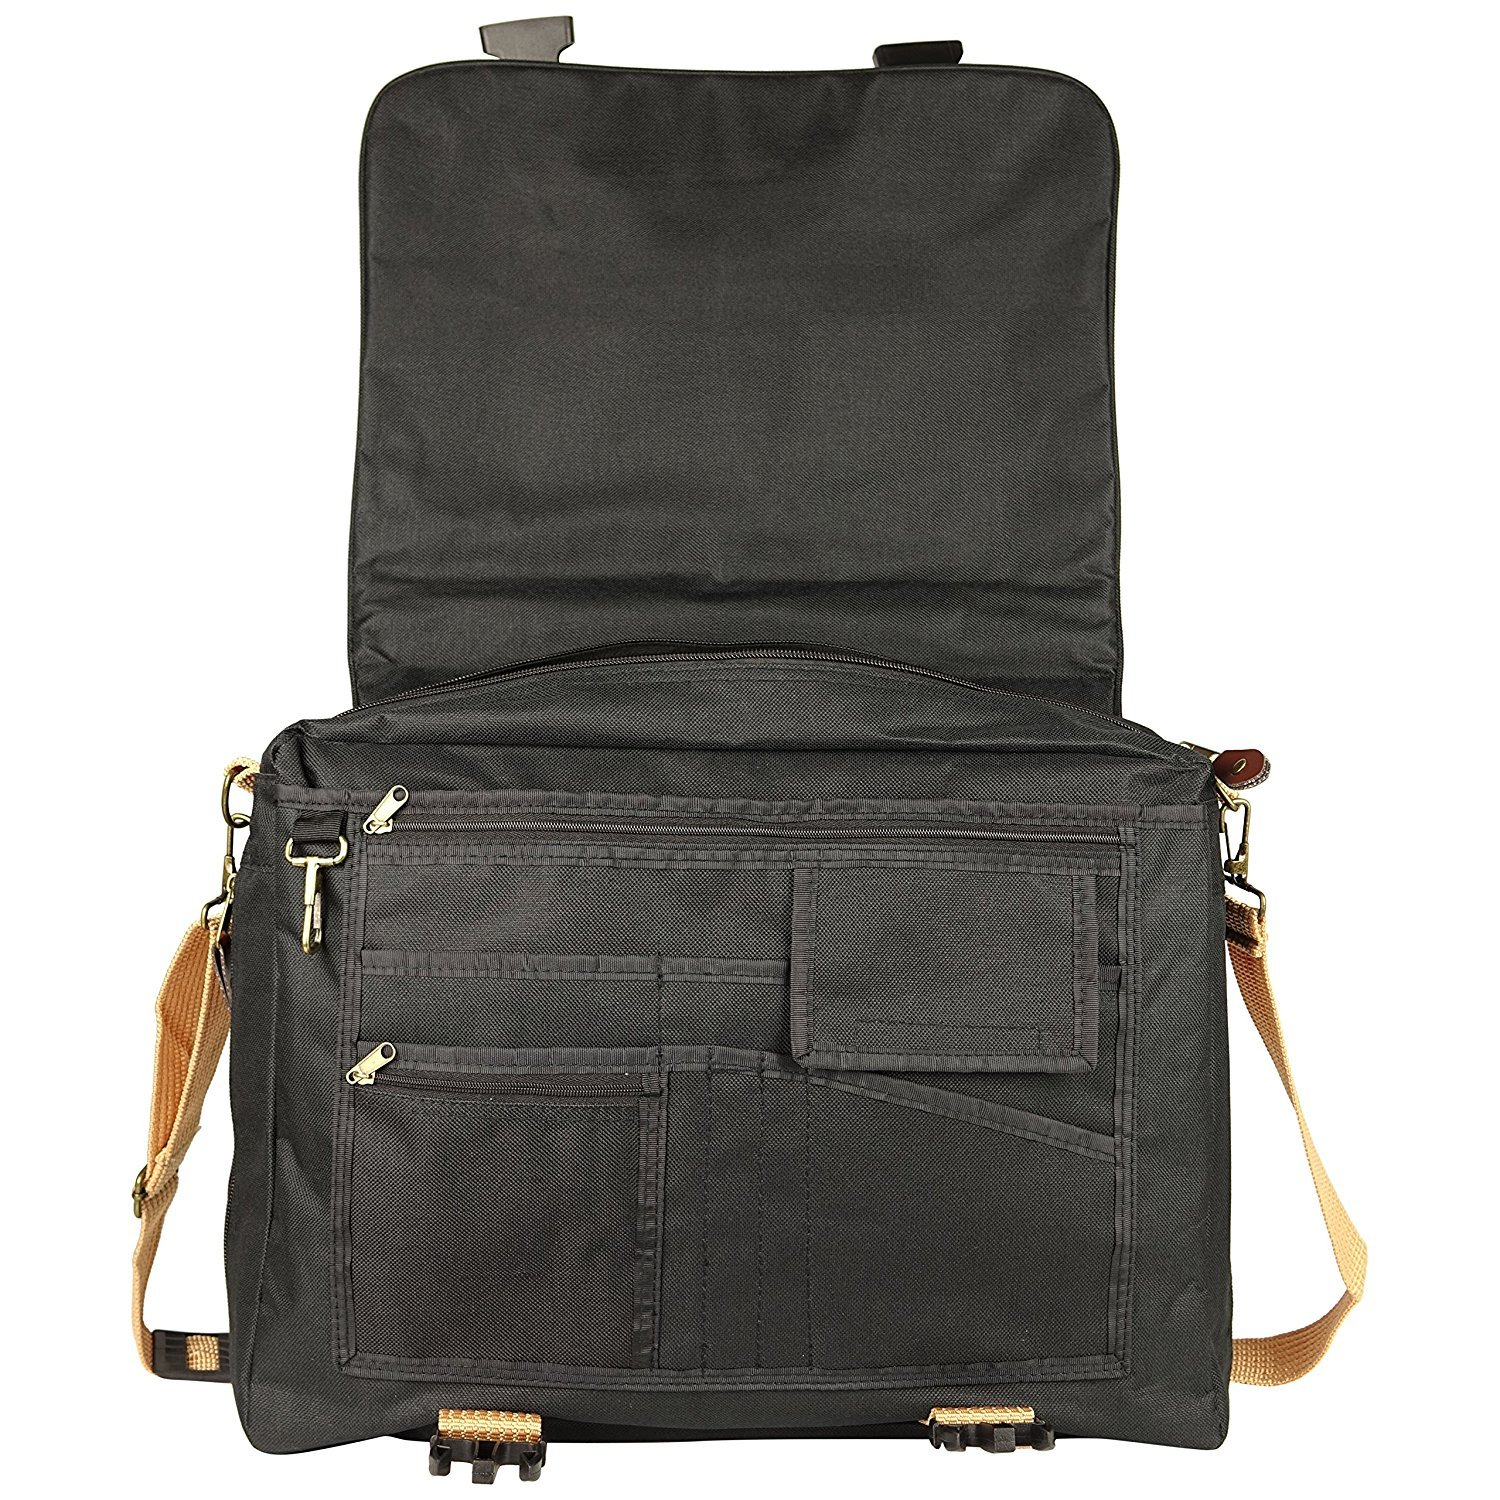 ImpecGear Deluxe Expandable Portfolio Adjustable w/Strap & Zippers (Pack of 1 (Black/Khaki))